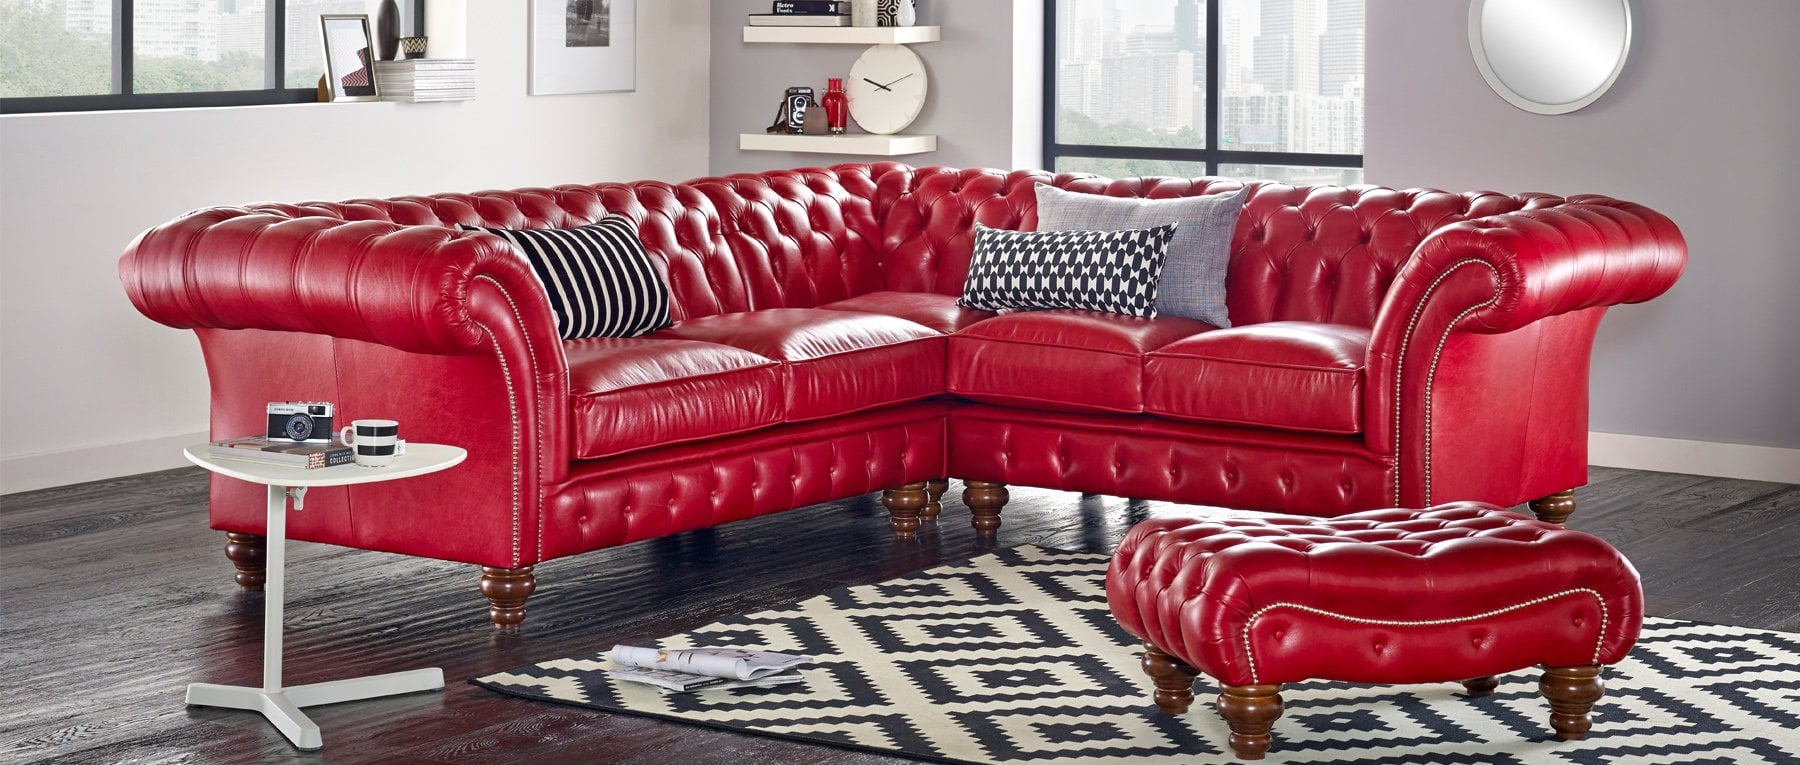 chesterfield furniture tufted furniture made in britain sofas by